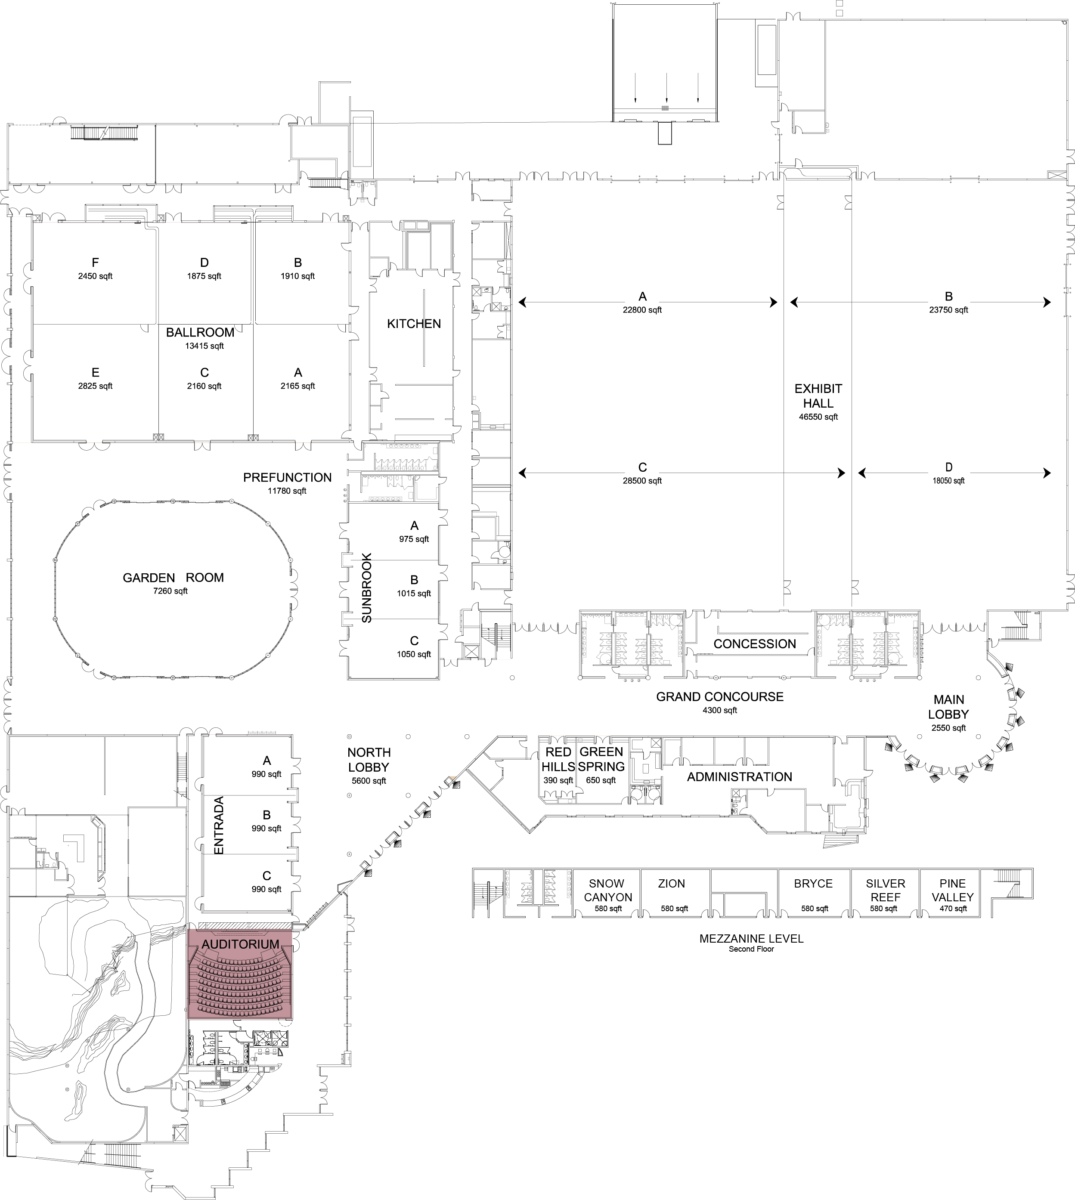 Floorplan of convention center with auditorium highlighted